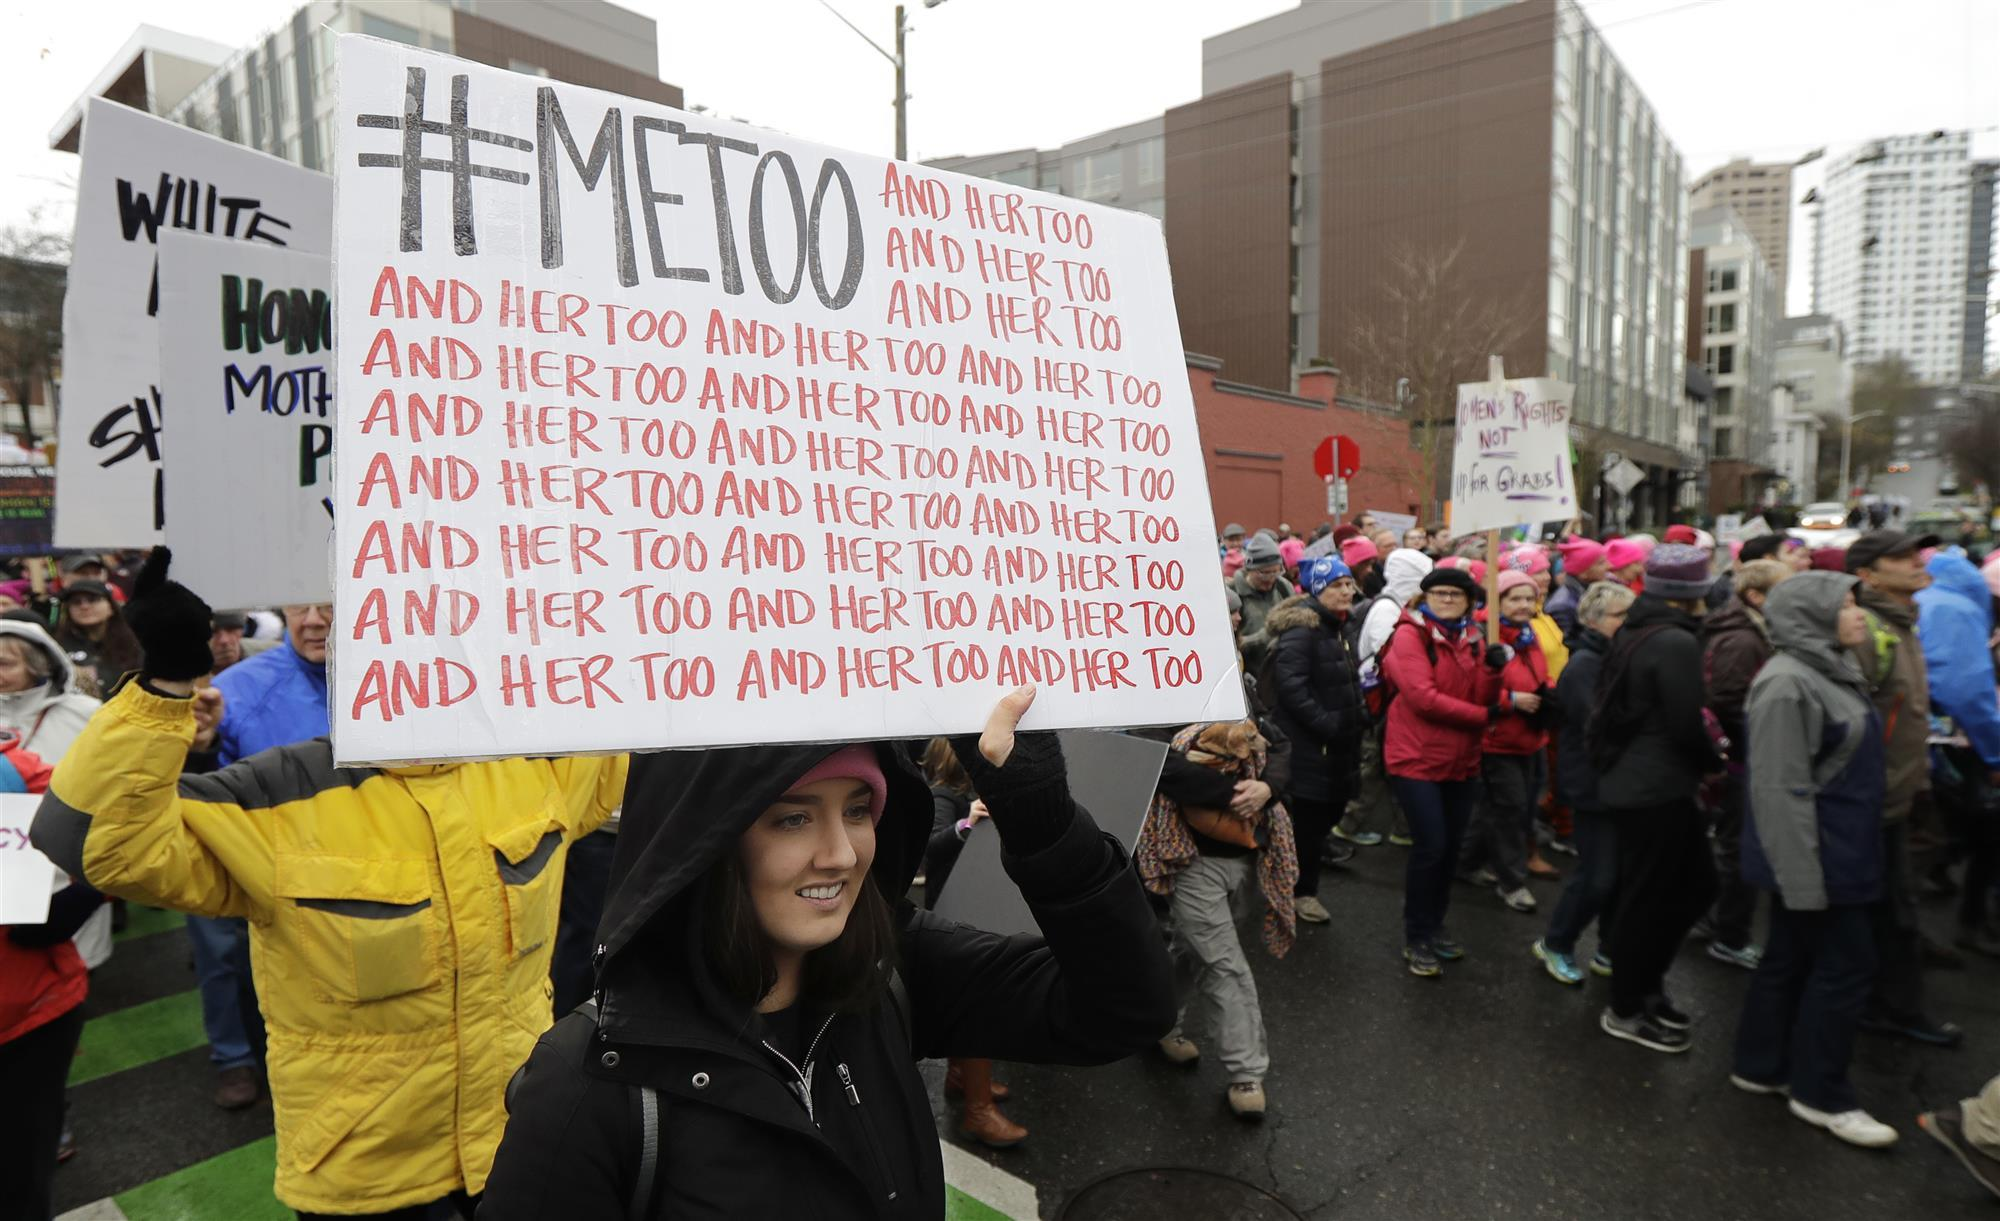 MeToo. #MeToo/Time´s Up